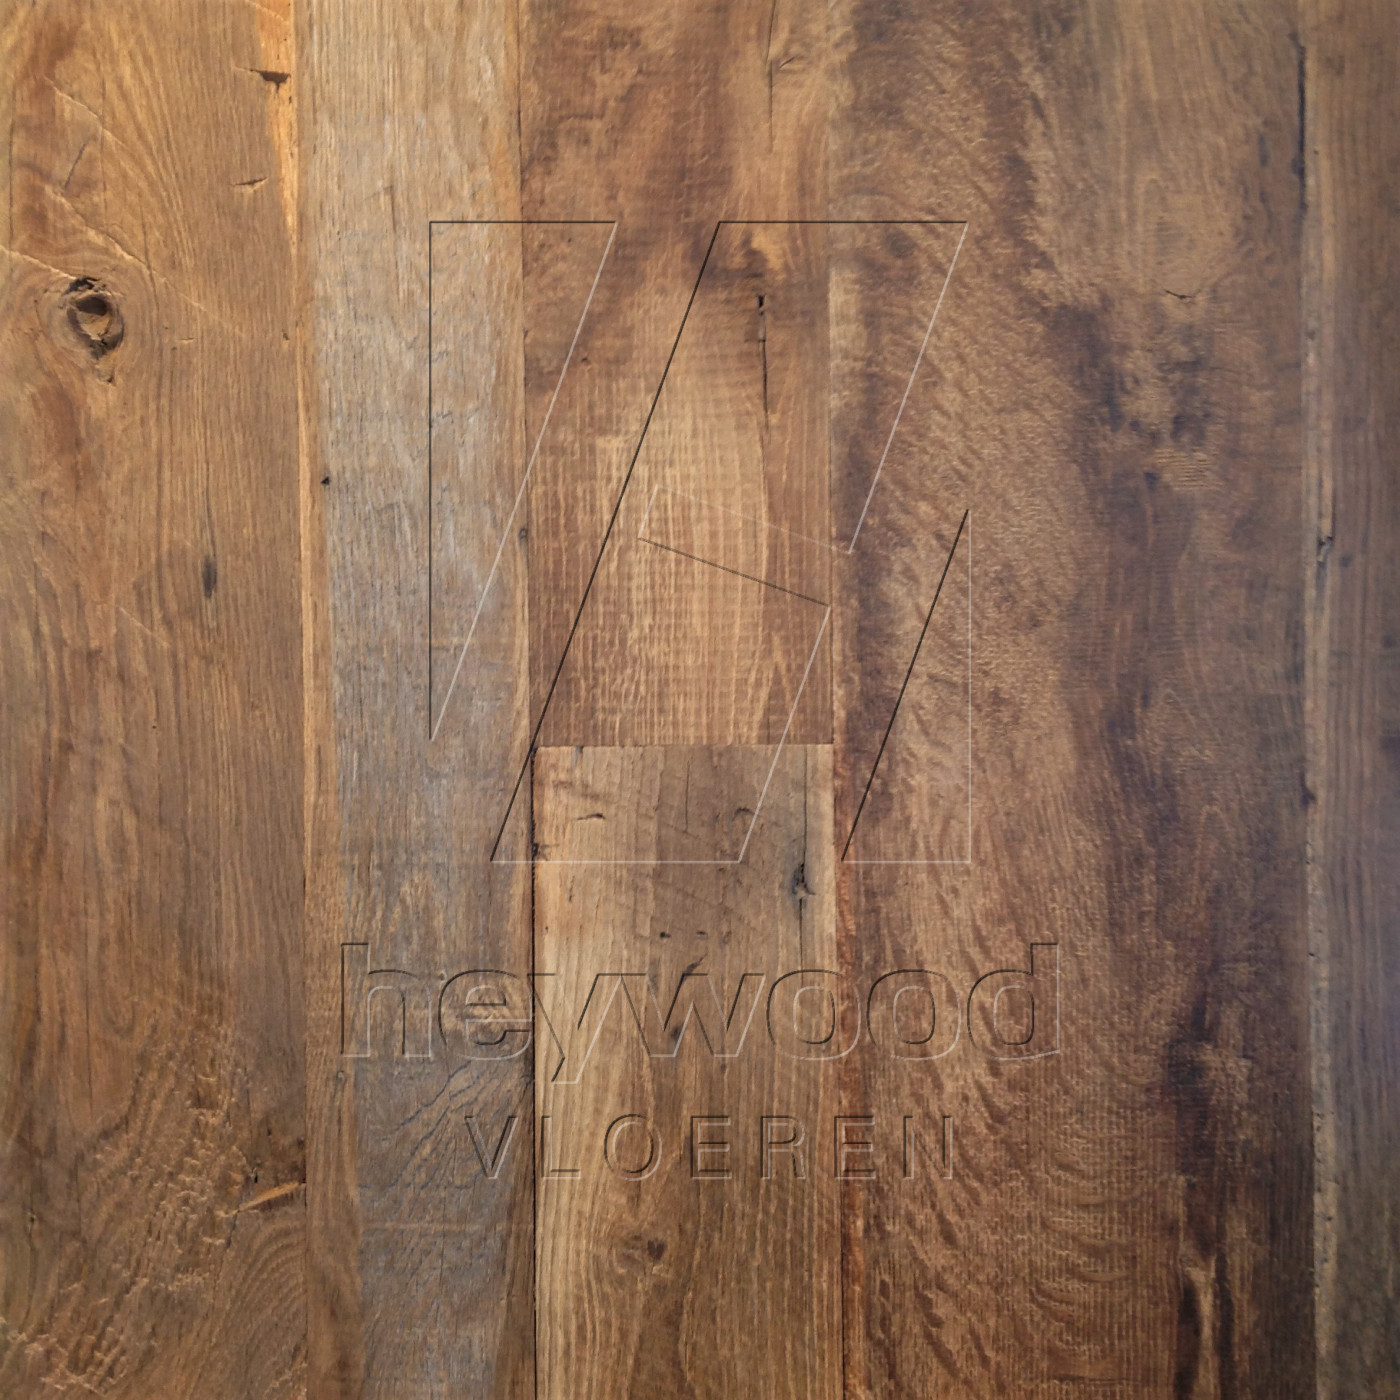 Cotswolds Plank (mixed widths, 200 years old Oak, Outside) in Plank OUTSIDES (authentic textured surface) of Old Reclaimed Wood